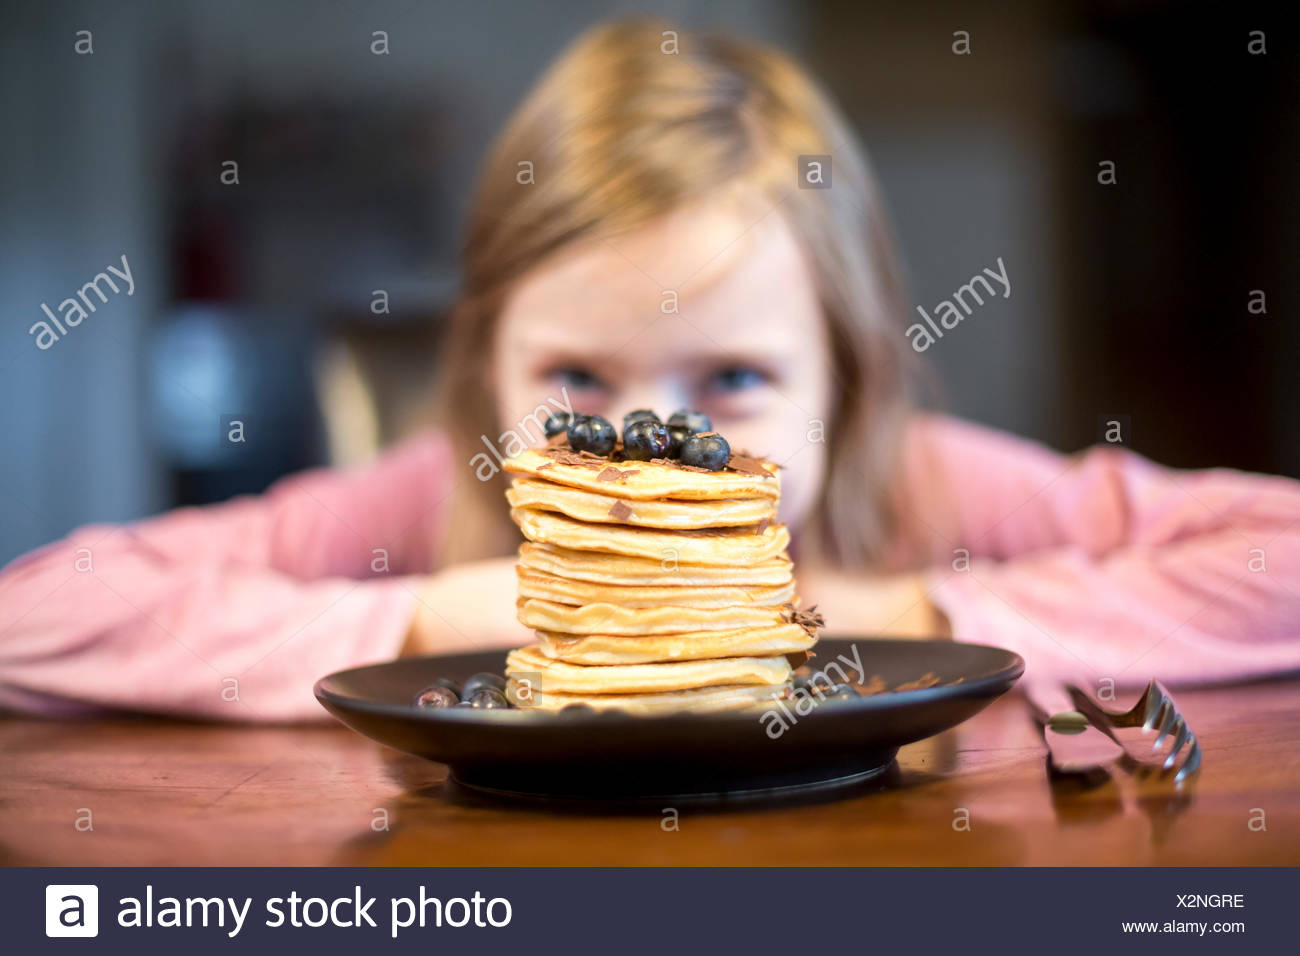 Plate with stack of pancakes with little girl in the background - Stock Image